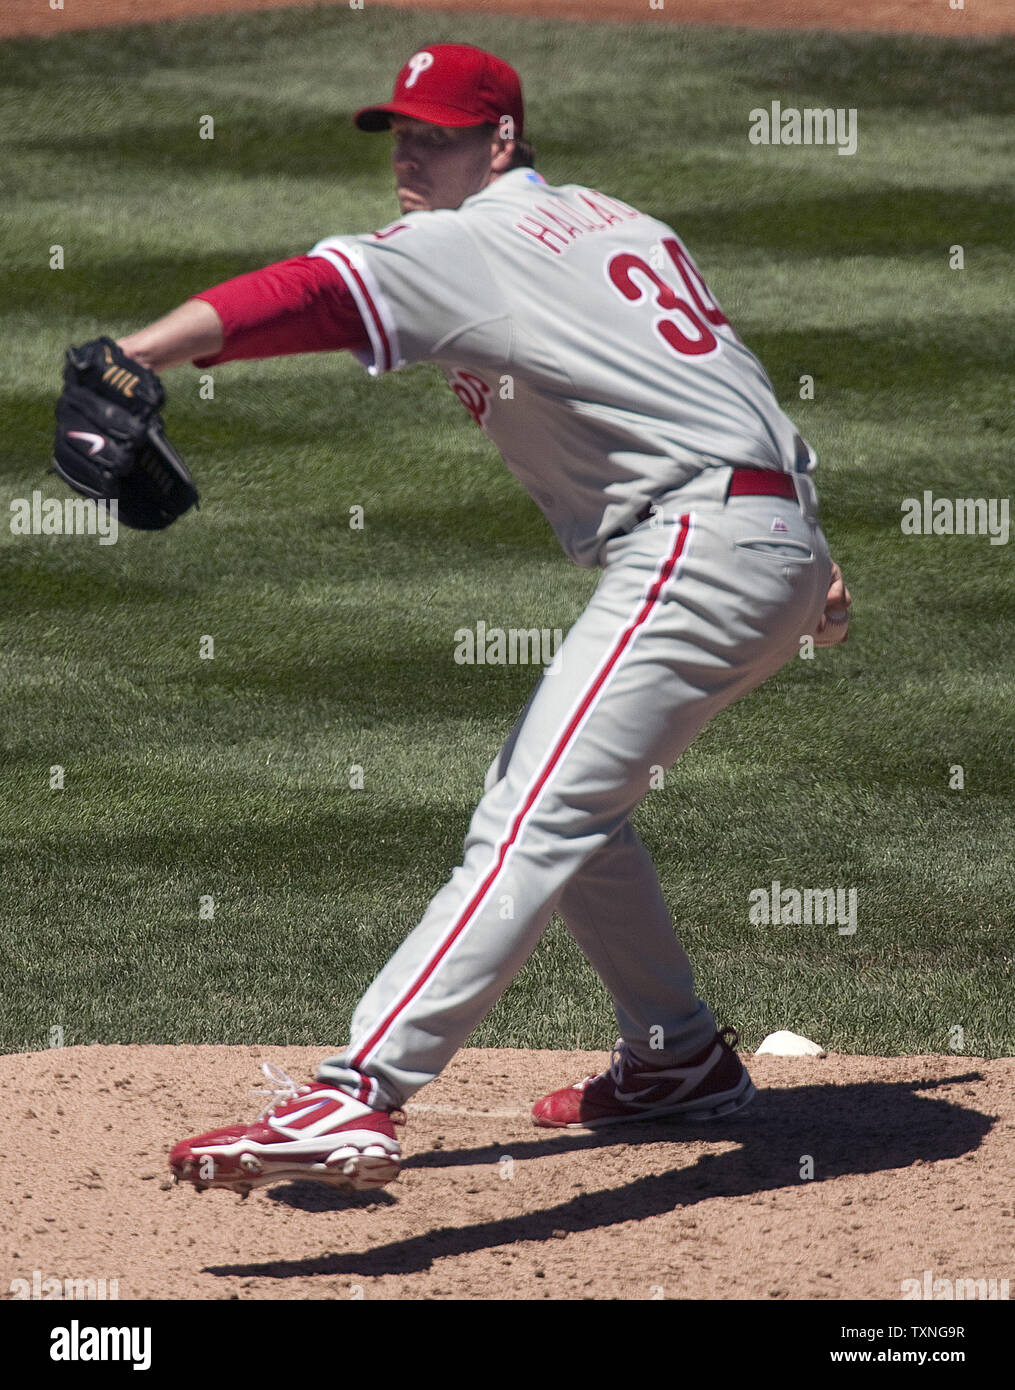 Philadelphia Phillies pitcher Roy Halladay (14-4) earned his 14th win of the season beating the Colorado Rockies 8-6 at Coors Field in Denver on August 3, 2011.    UPI/Gary C. Caskey - Stock Image